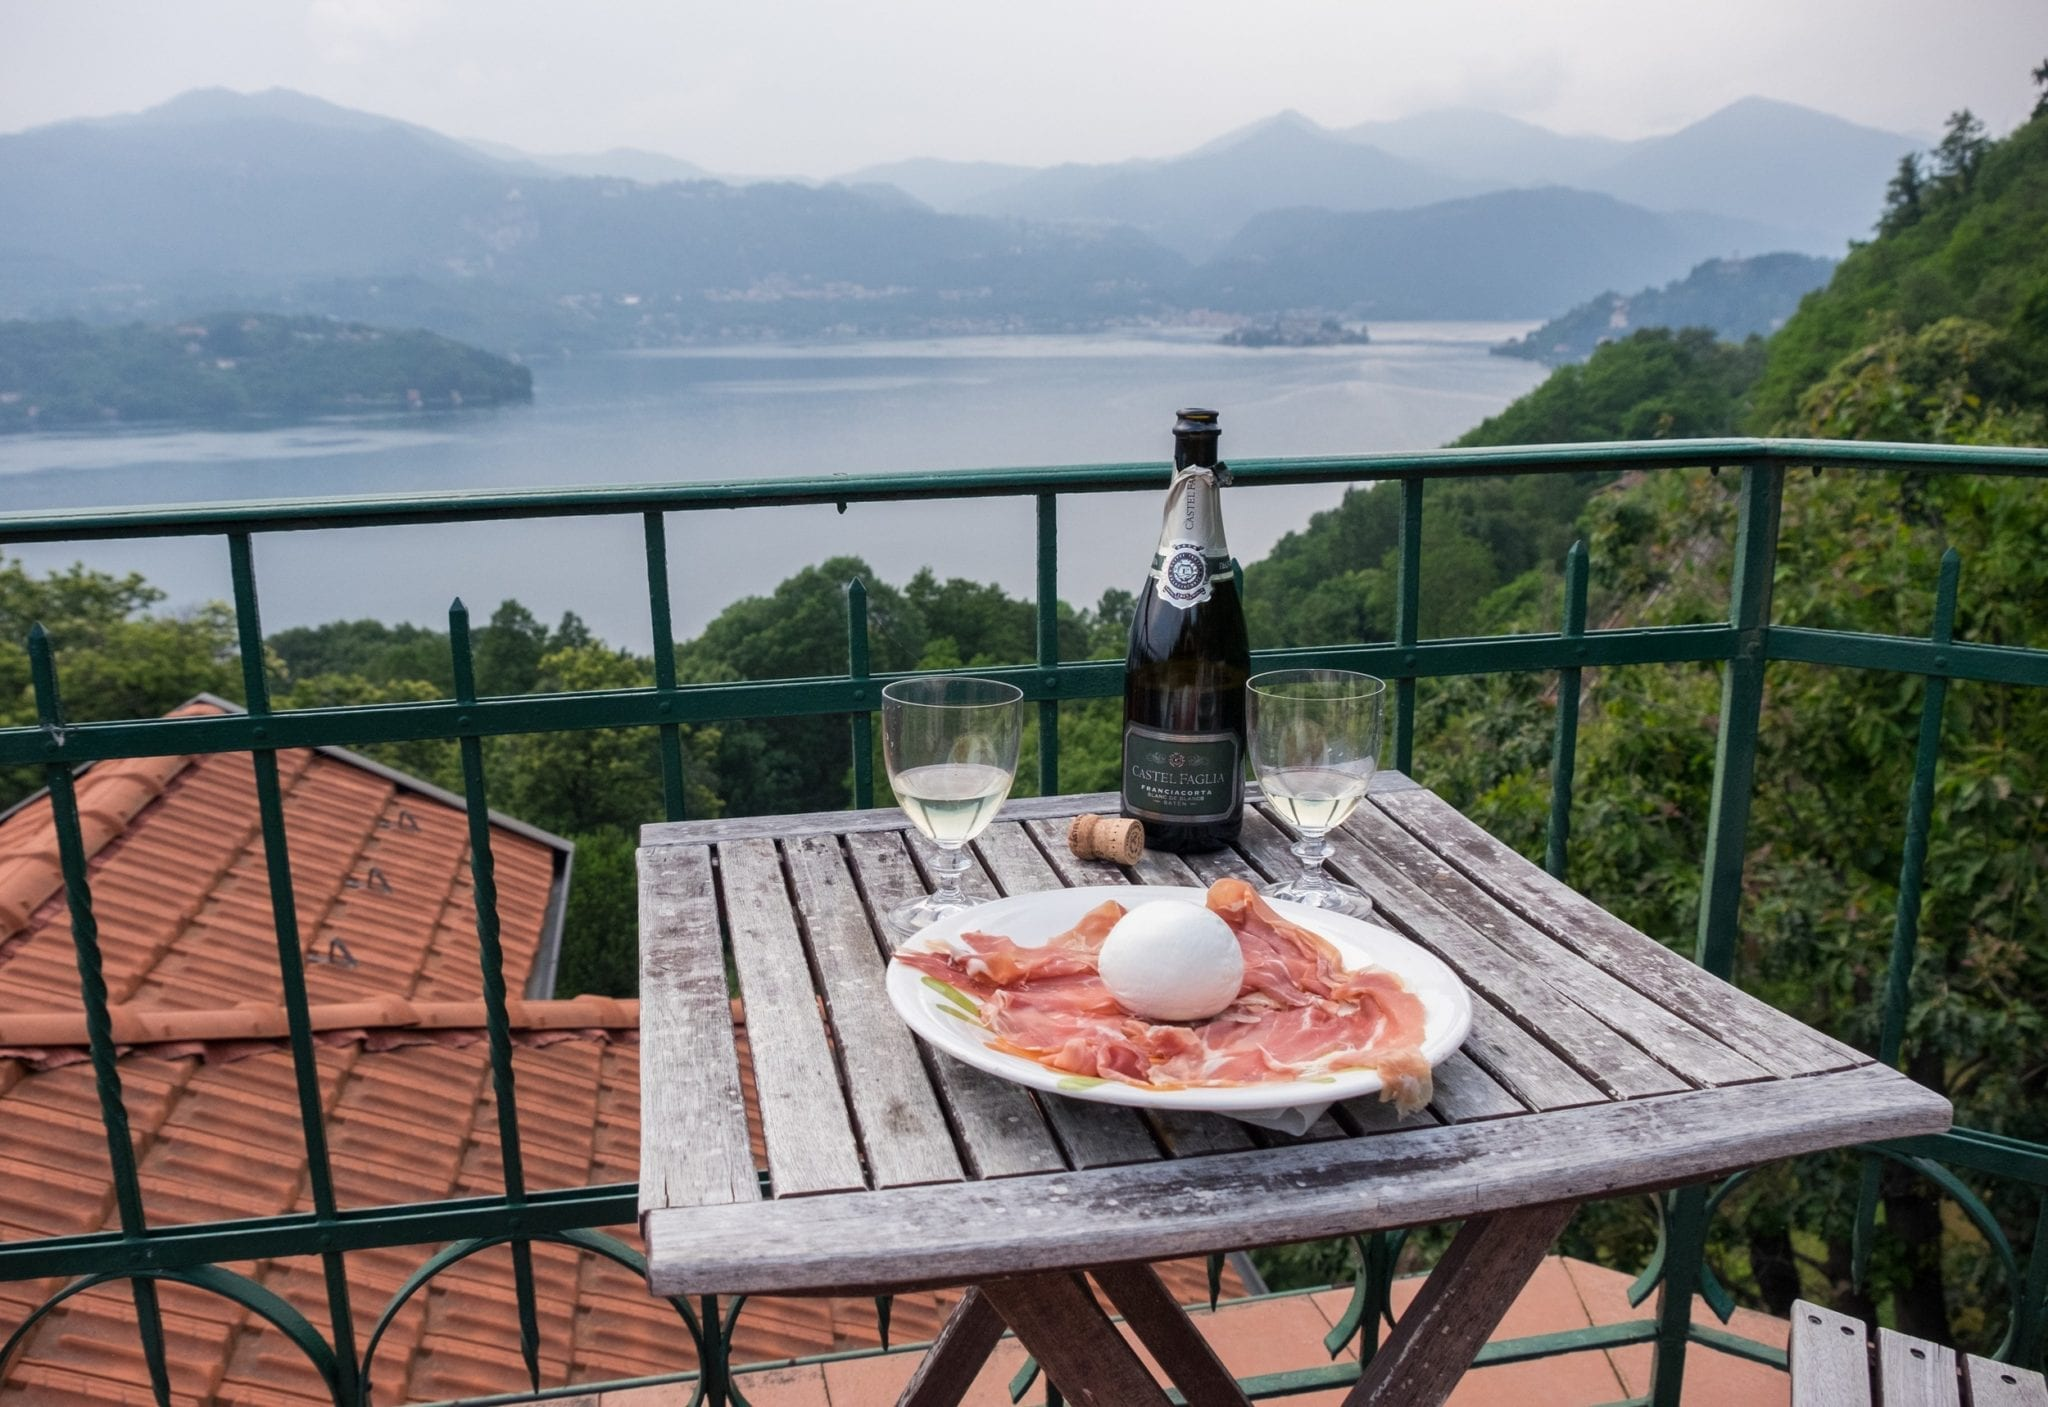 A terrace overlooks a blue and gray misty Lake Orta in the distance, mountains rising up over the lake. In the foreground there is a weathered wooden table. On it is a plate covered with prosciutto and a ball of burrata cheese; behind it are a bottle of Franciacorta sparkling white wine and two goblets filled with the wine.